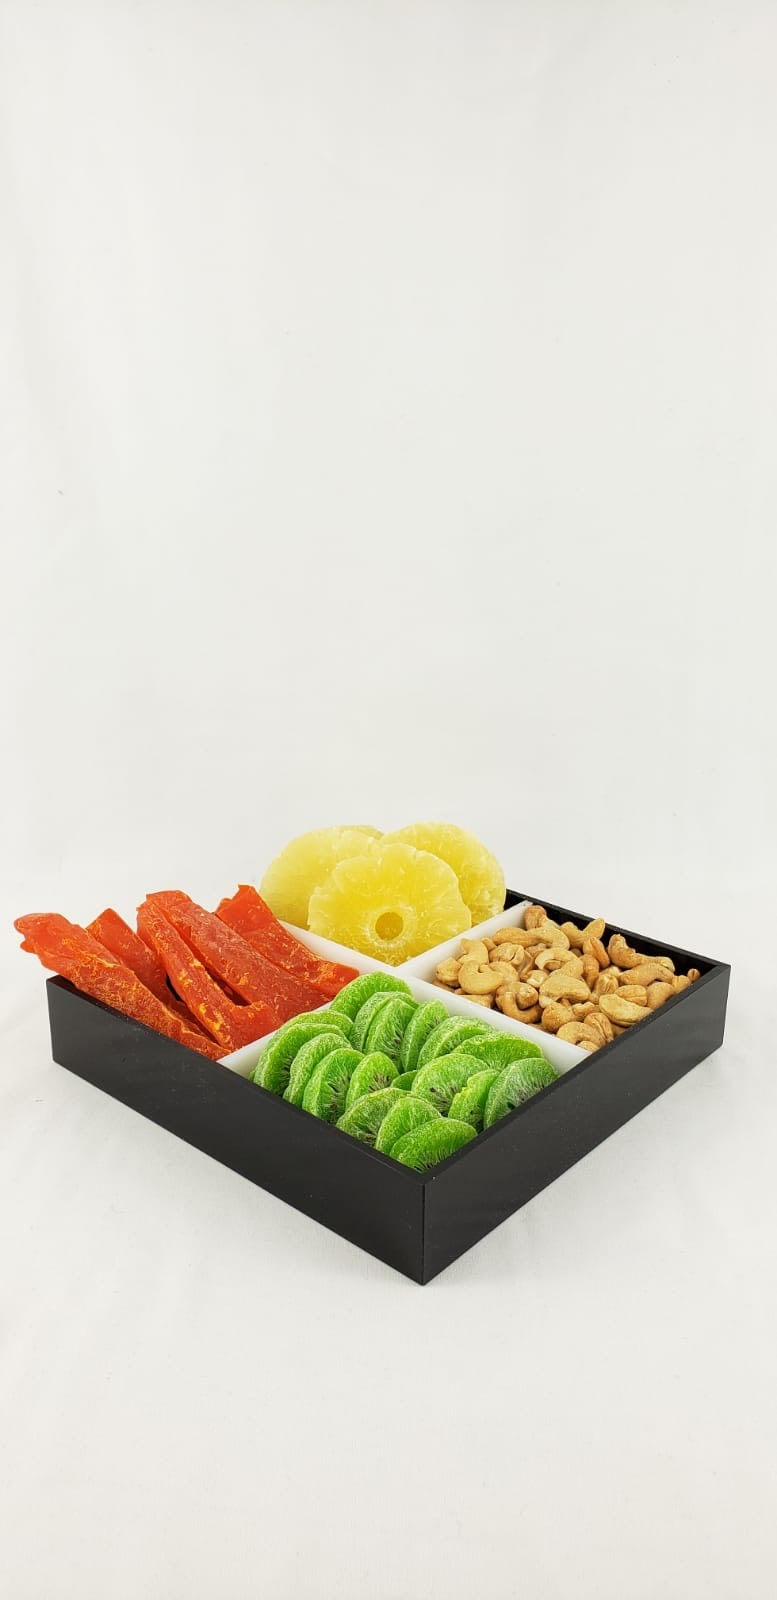 Black & white 4 sectional tray w fruits